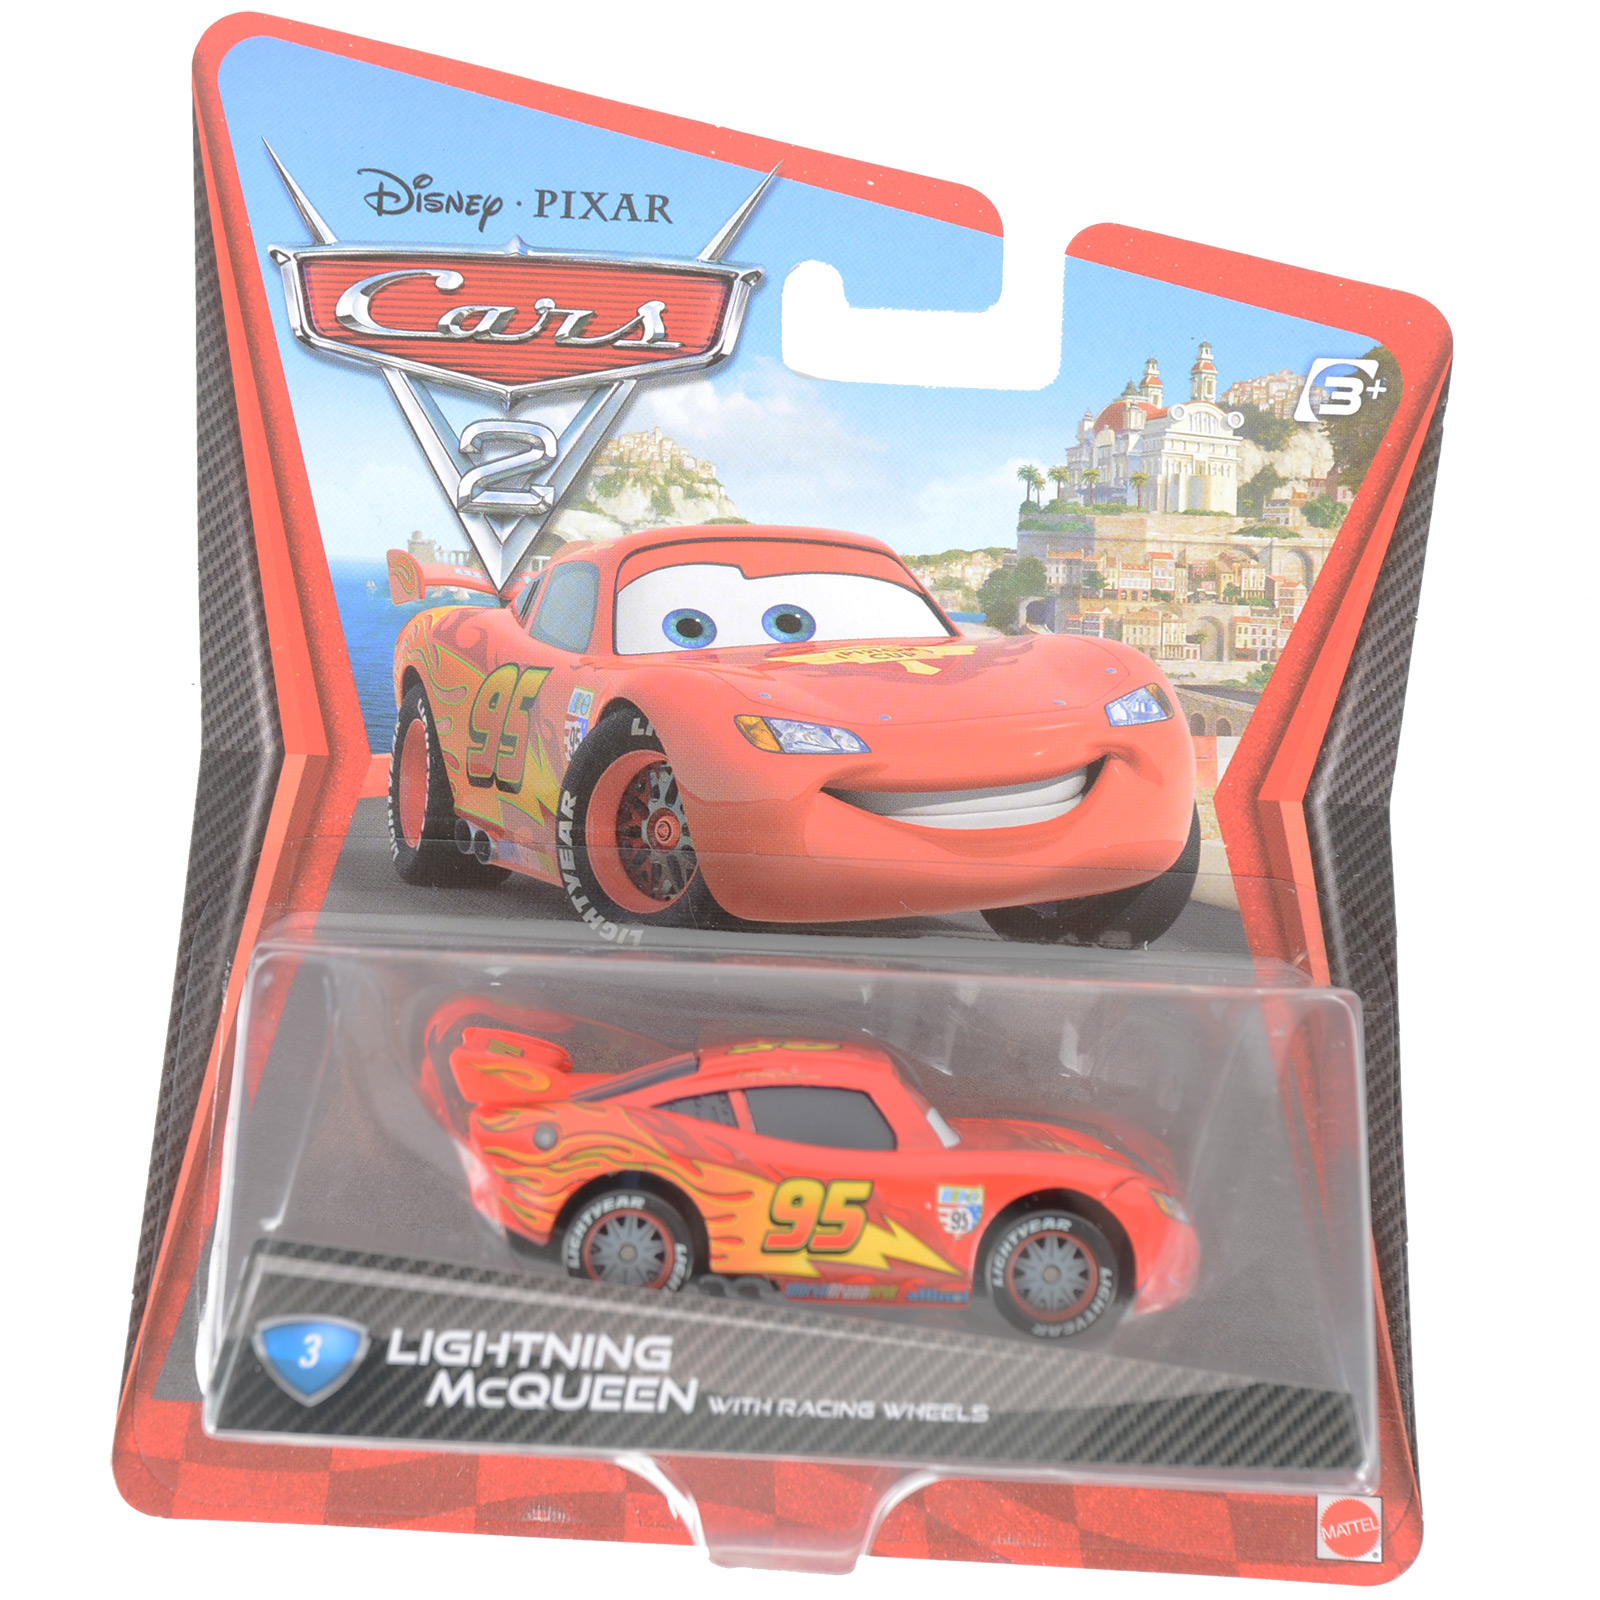 Disney Pixar Cars 2 Die Cast Character Vehicle Toy Car